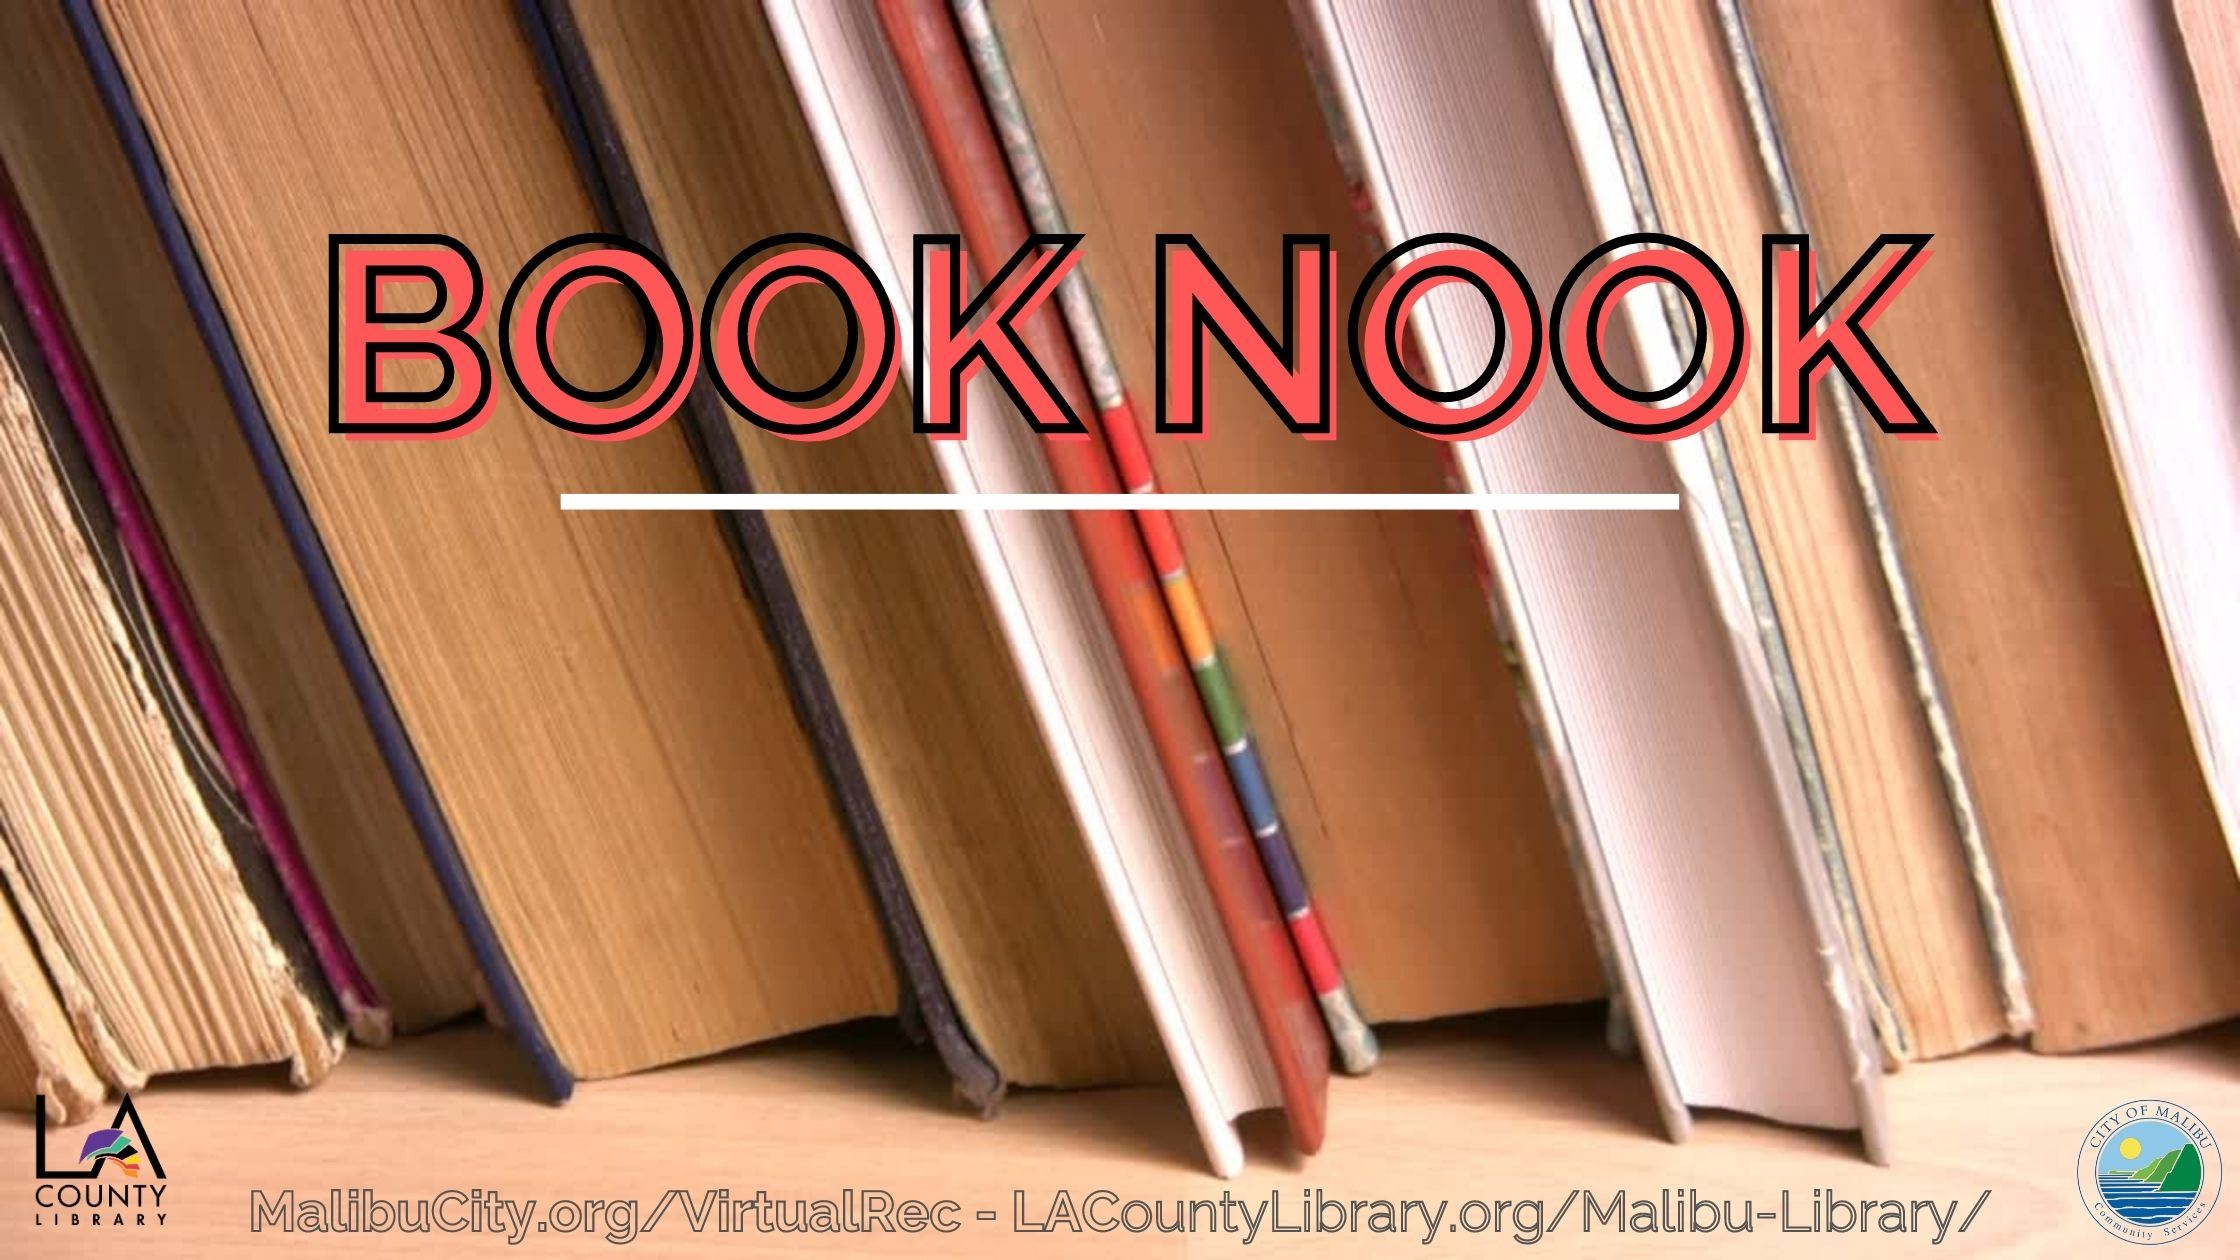 Copy of Book Nook - Website (1)